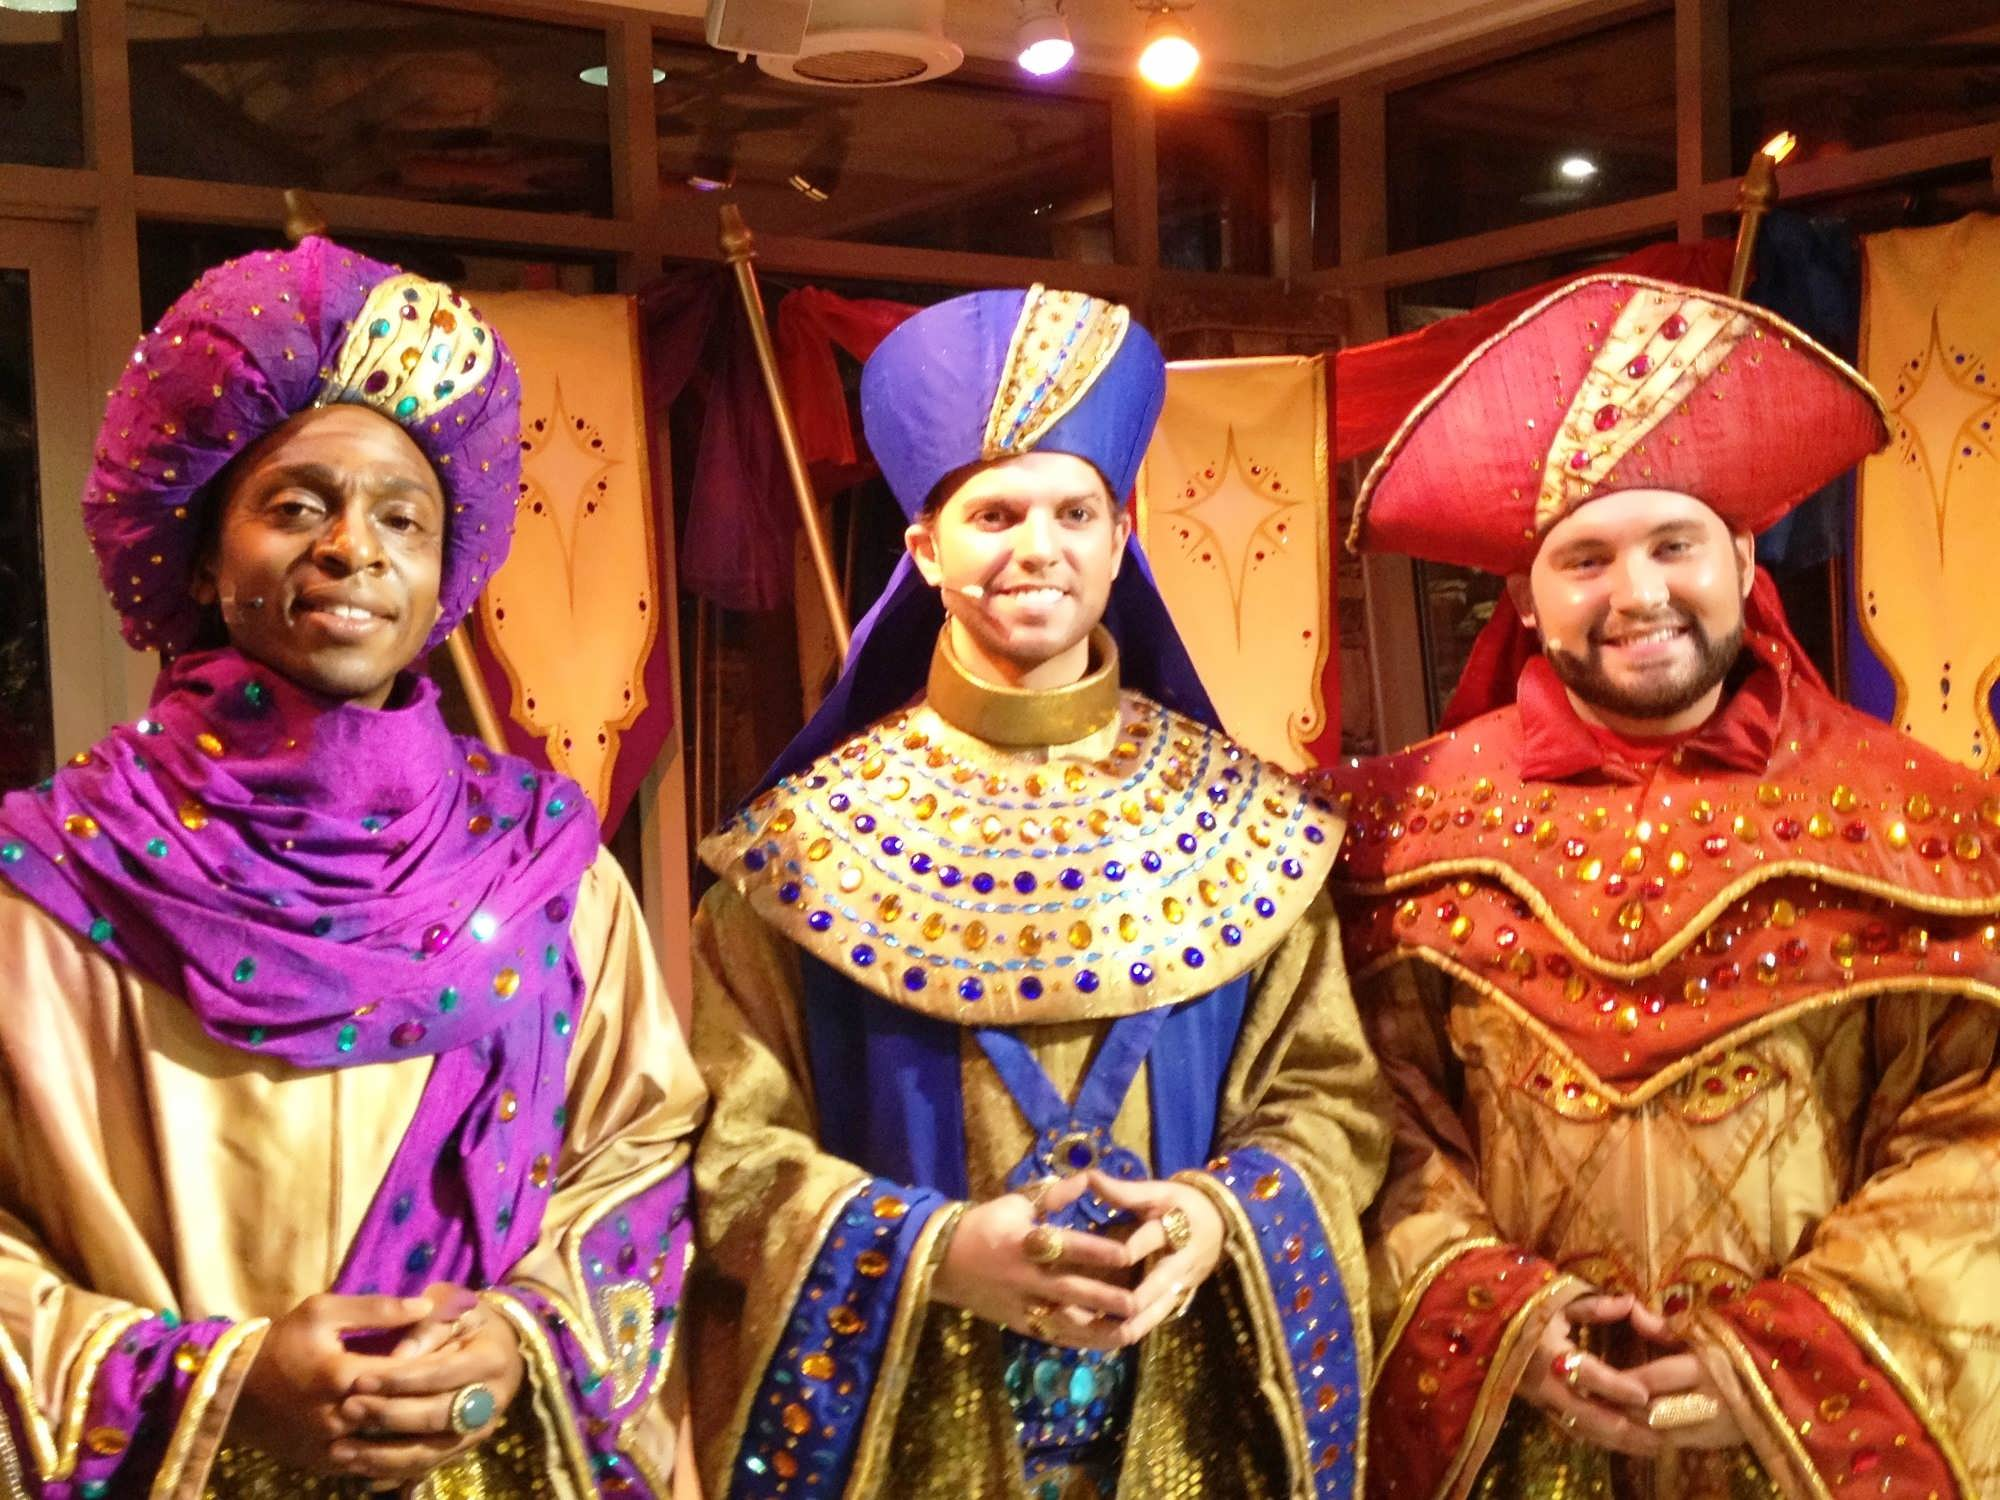 Christmas Town at Busch Gardens: A new holiday tradition filled ...